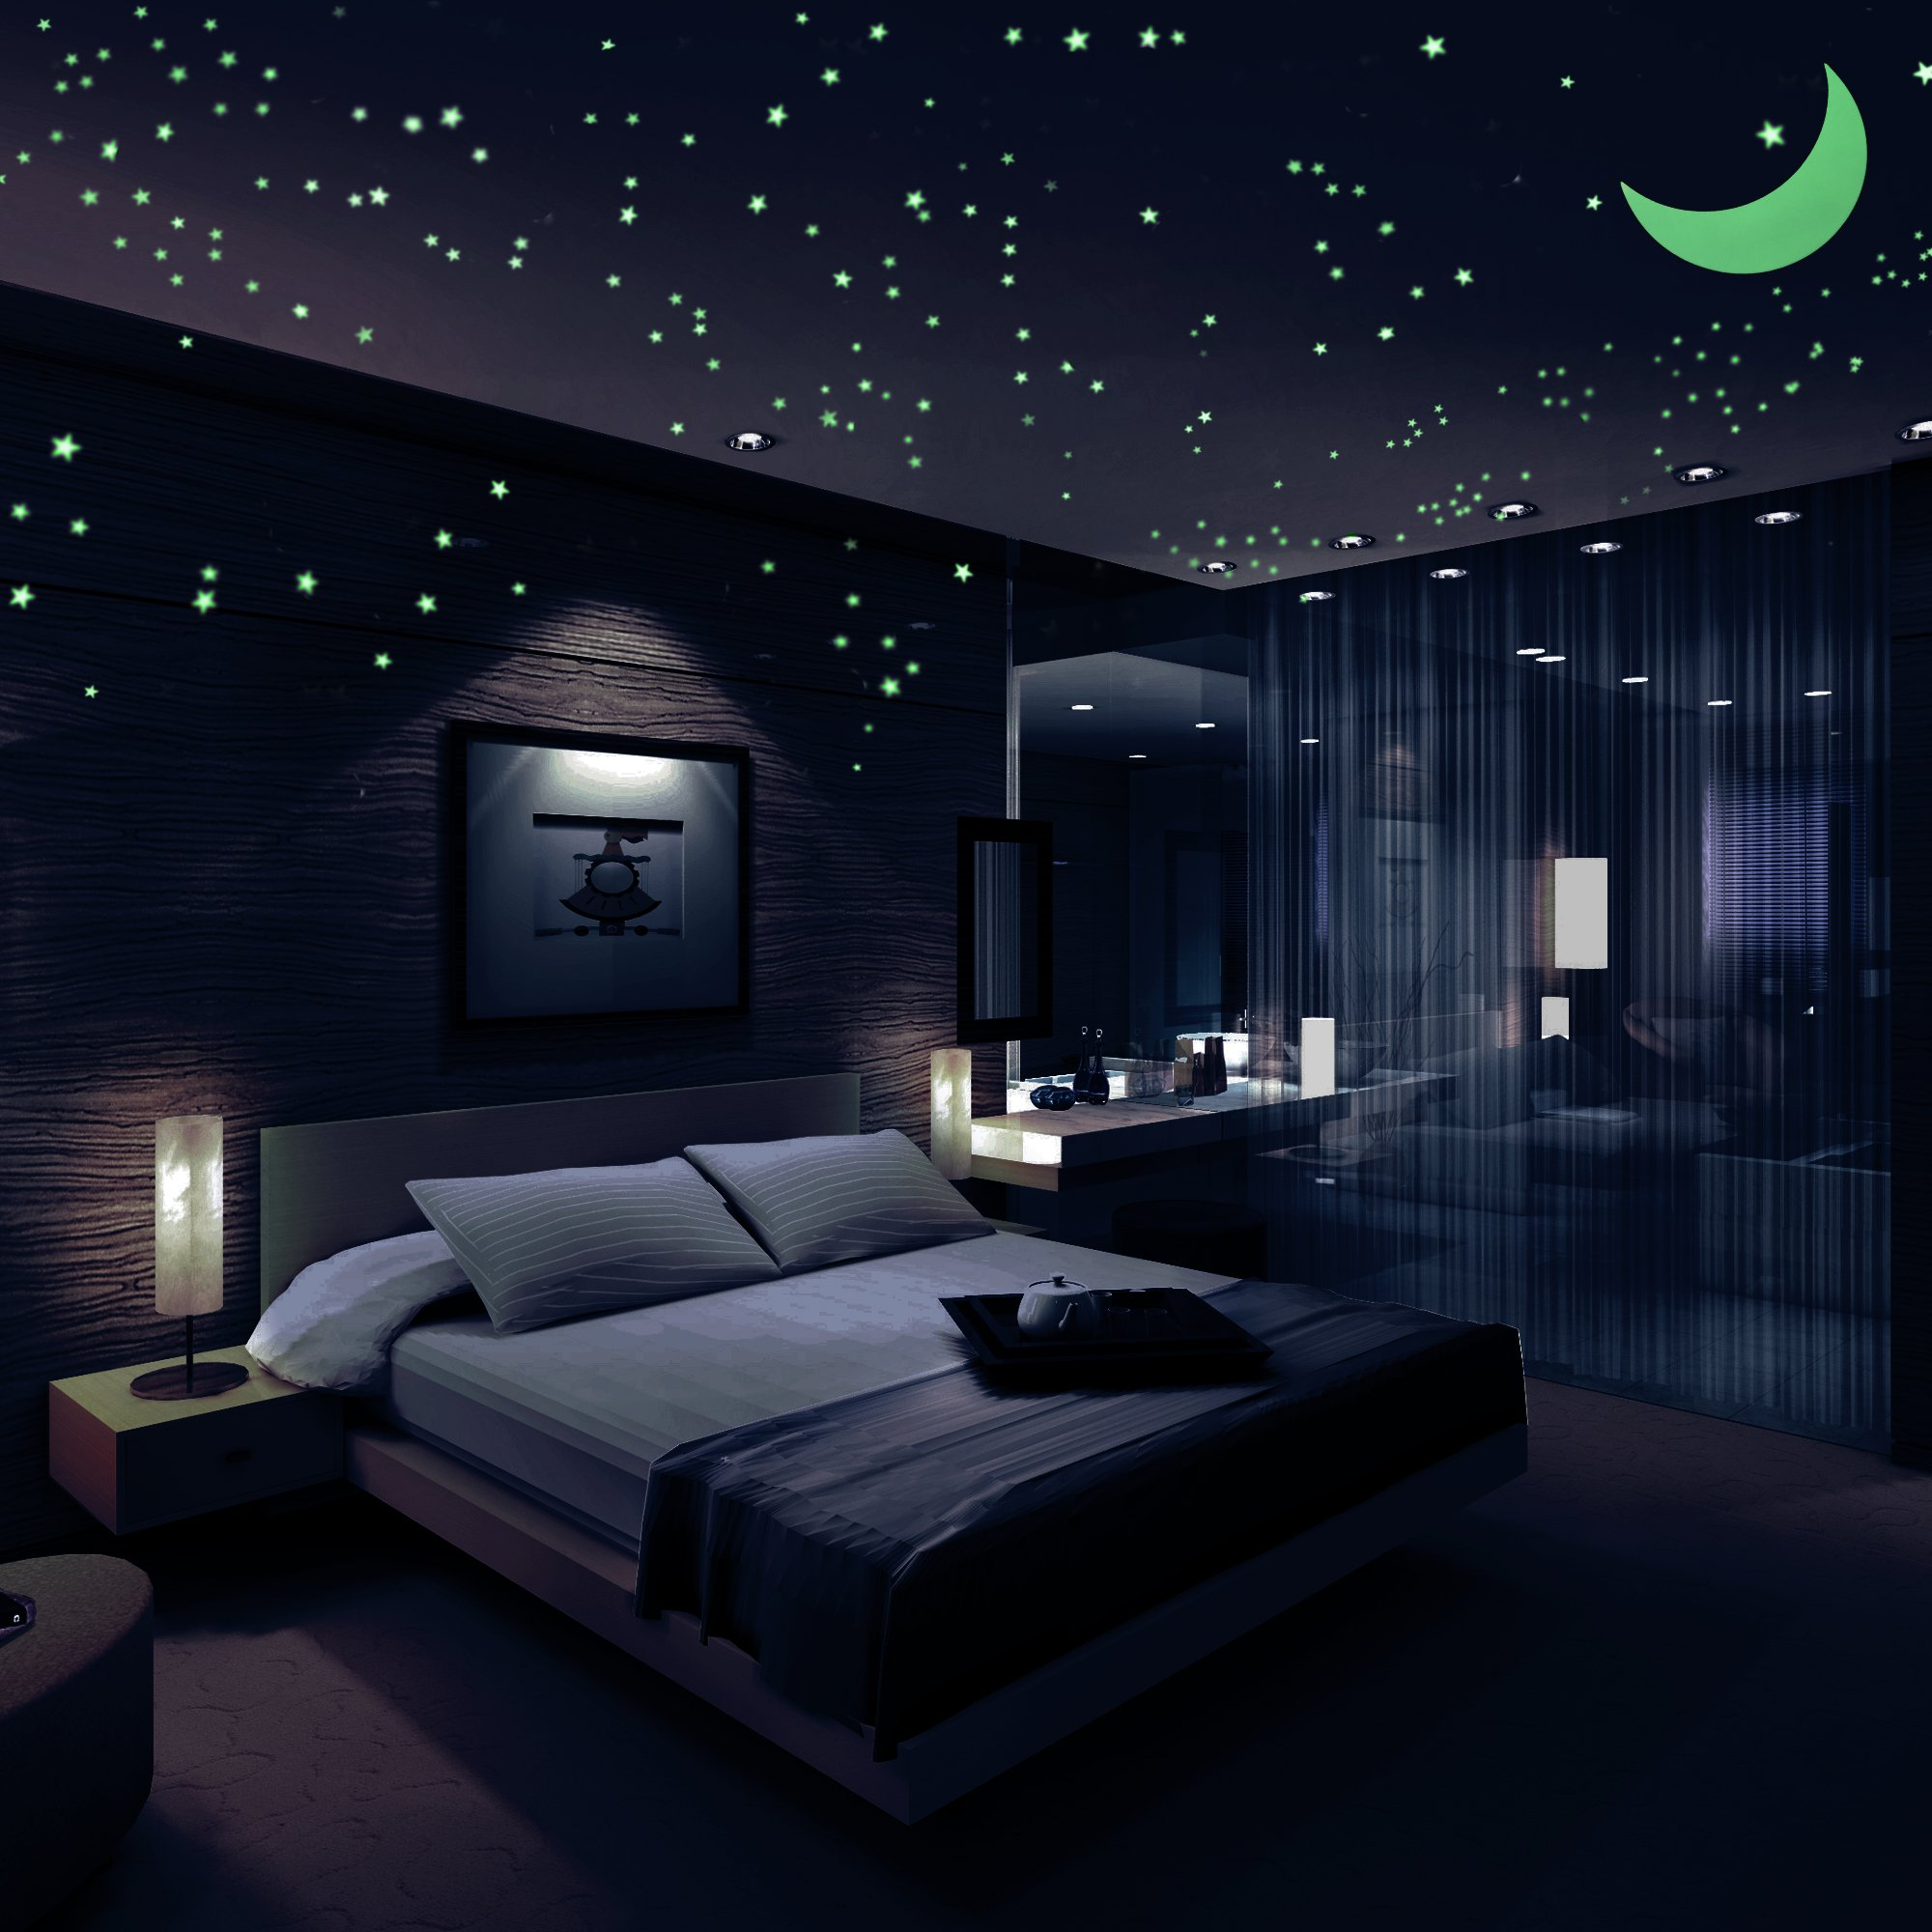 Amazon Moon And Meteors Removable Wall Stickers Glow In The